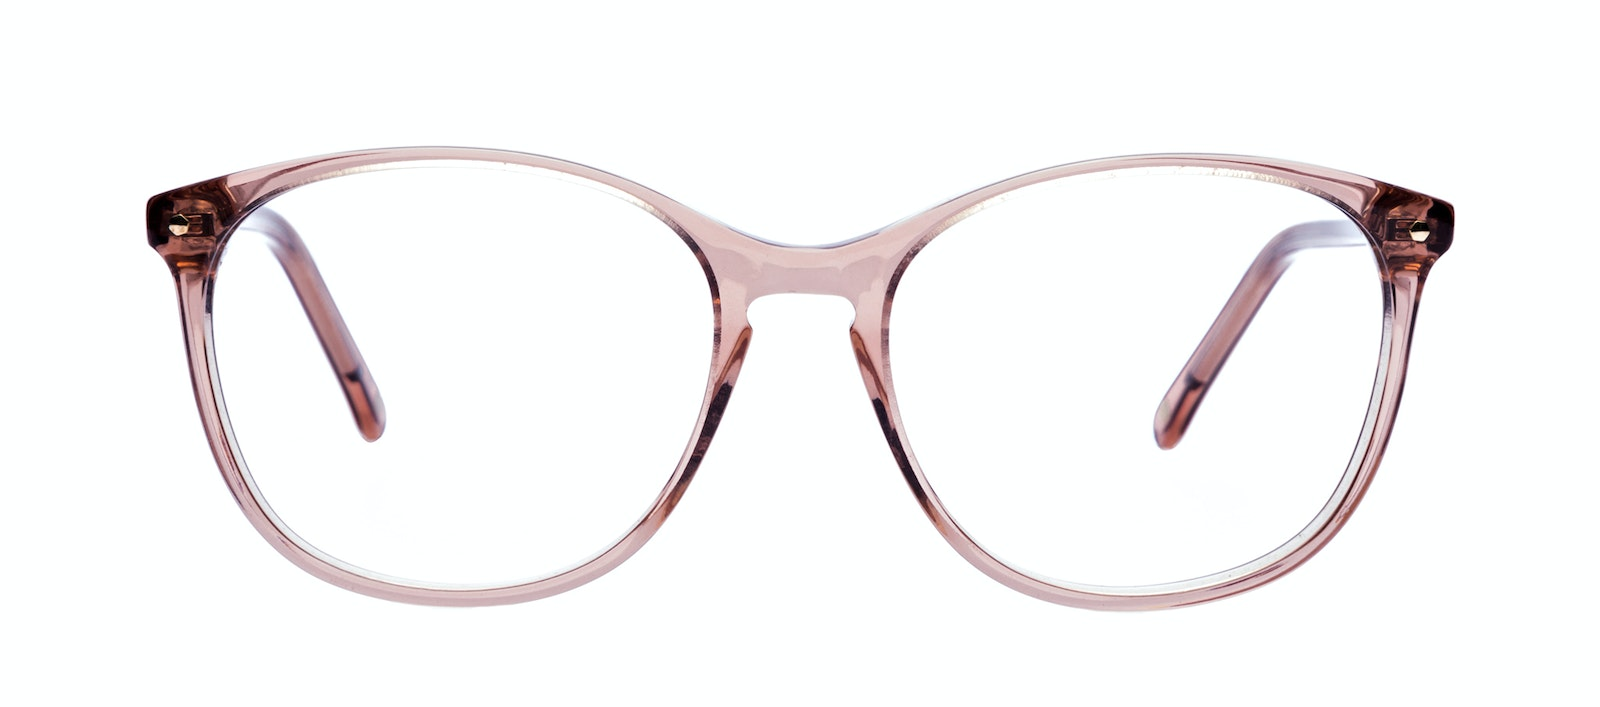 Affordable Fashion Glasses Rectangle Square Round Eyeglasses Women Nadine Rose Front